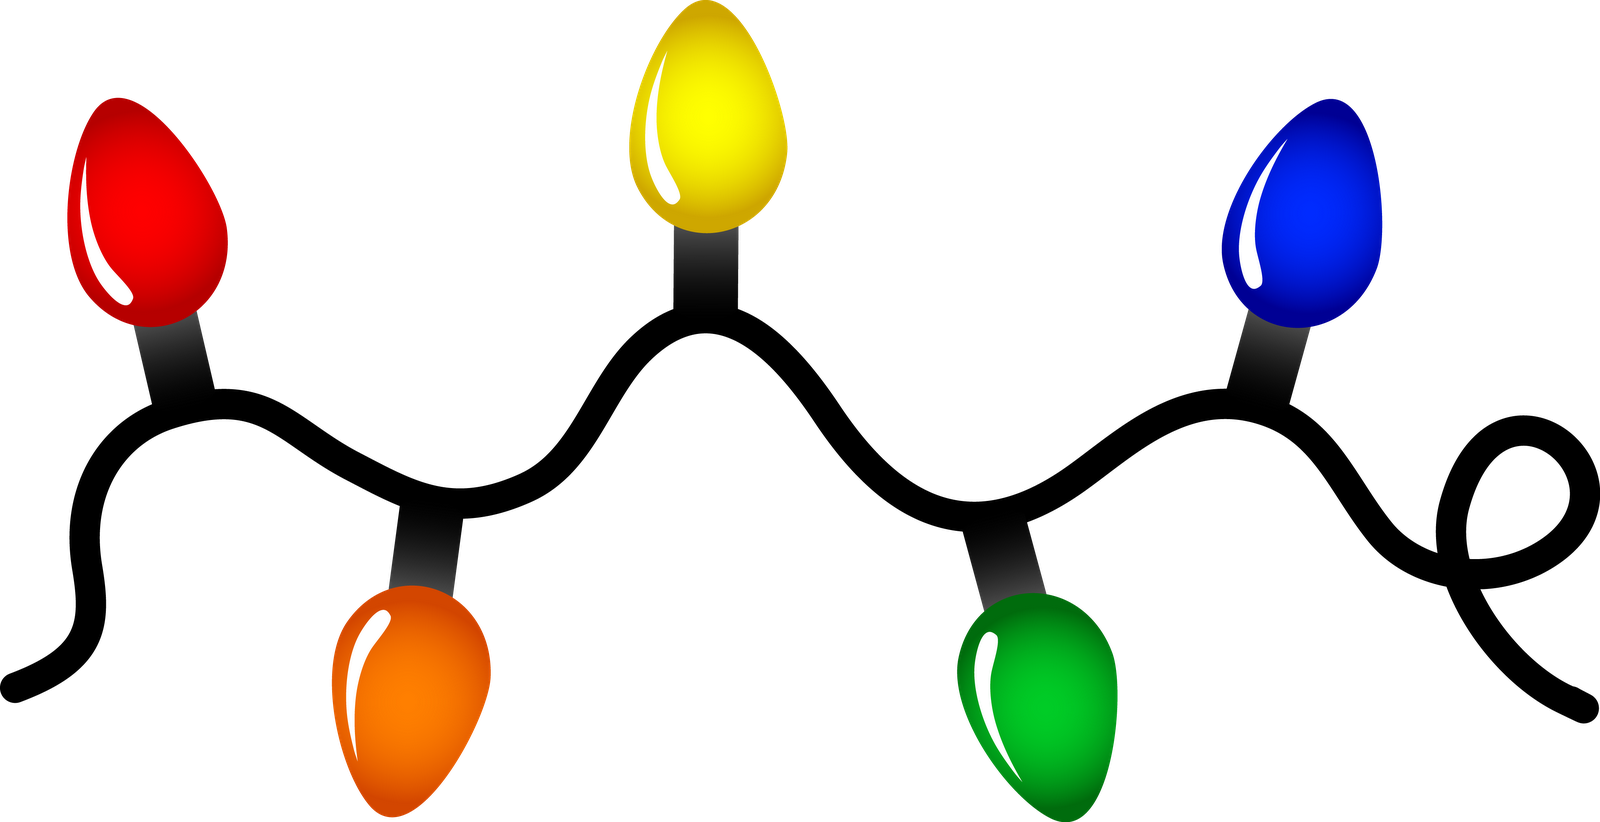 Bulb drawing christmas. Light clipart at getdrawings